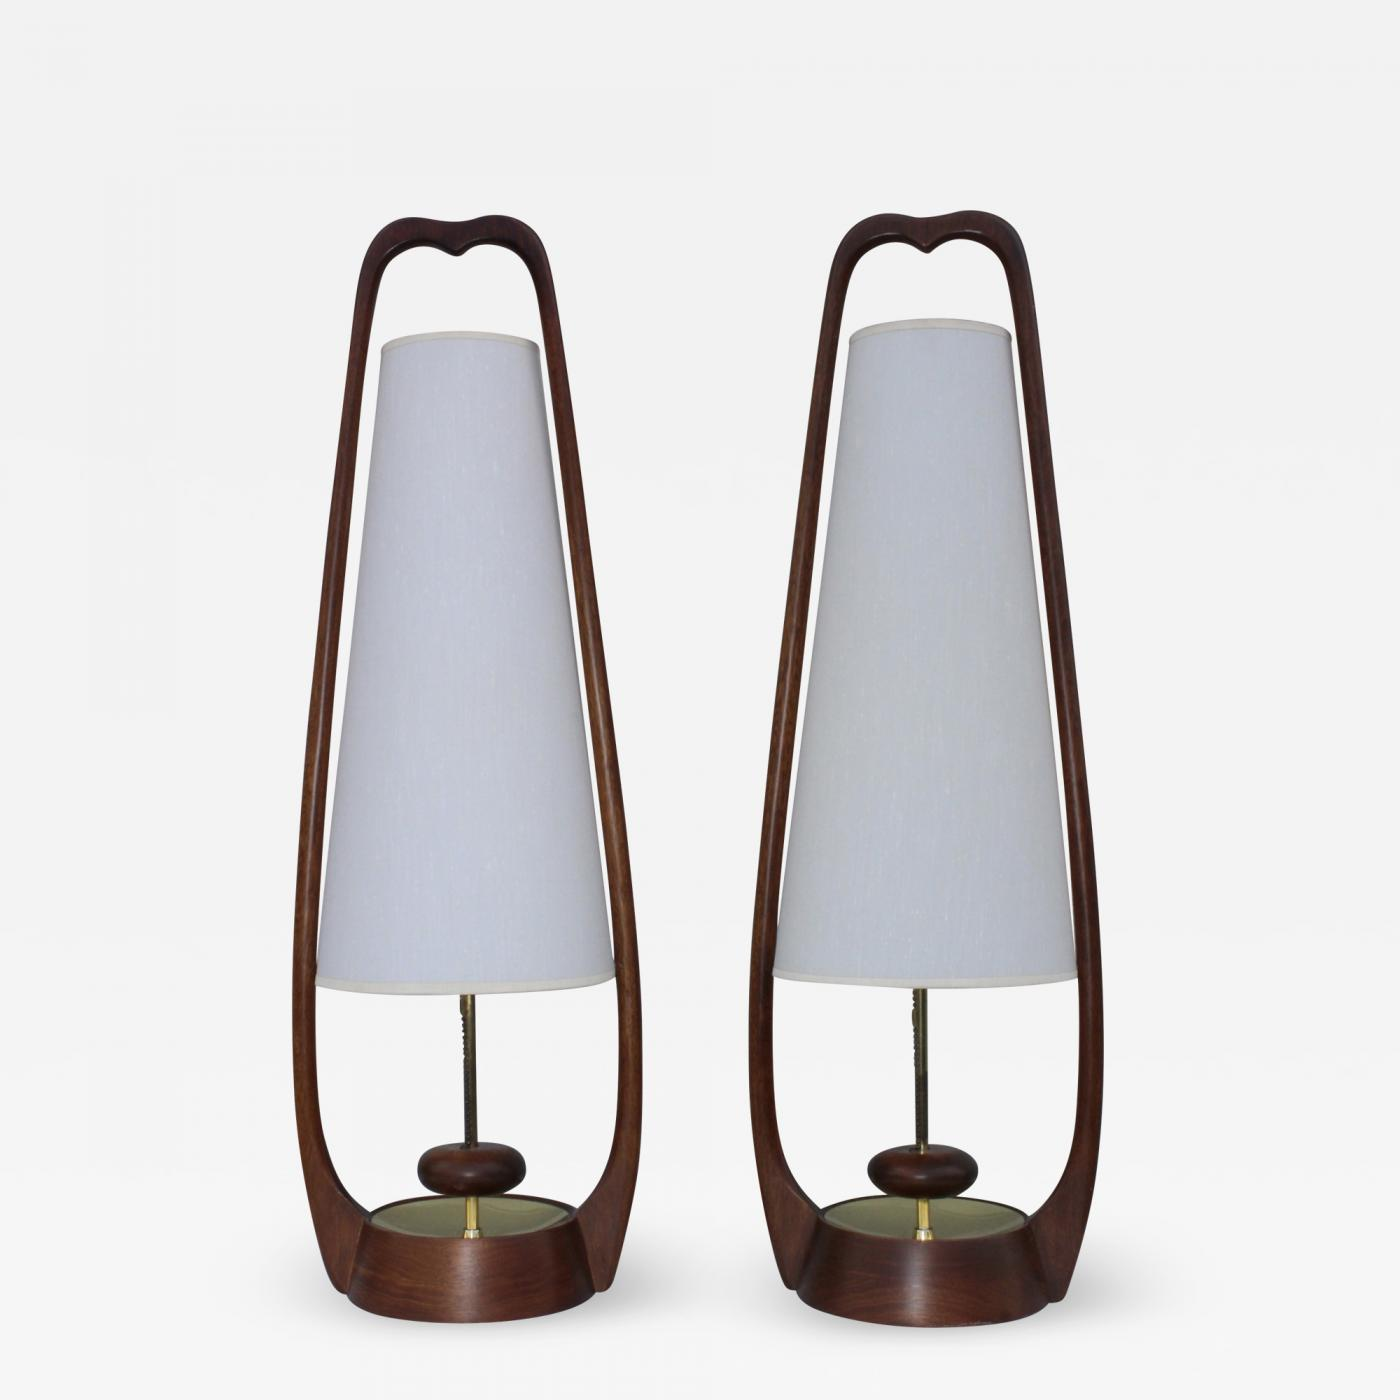 Modeline 1960 S Mid Century Modern Table Lamps By Modeline